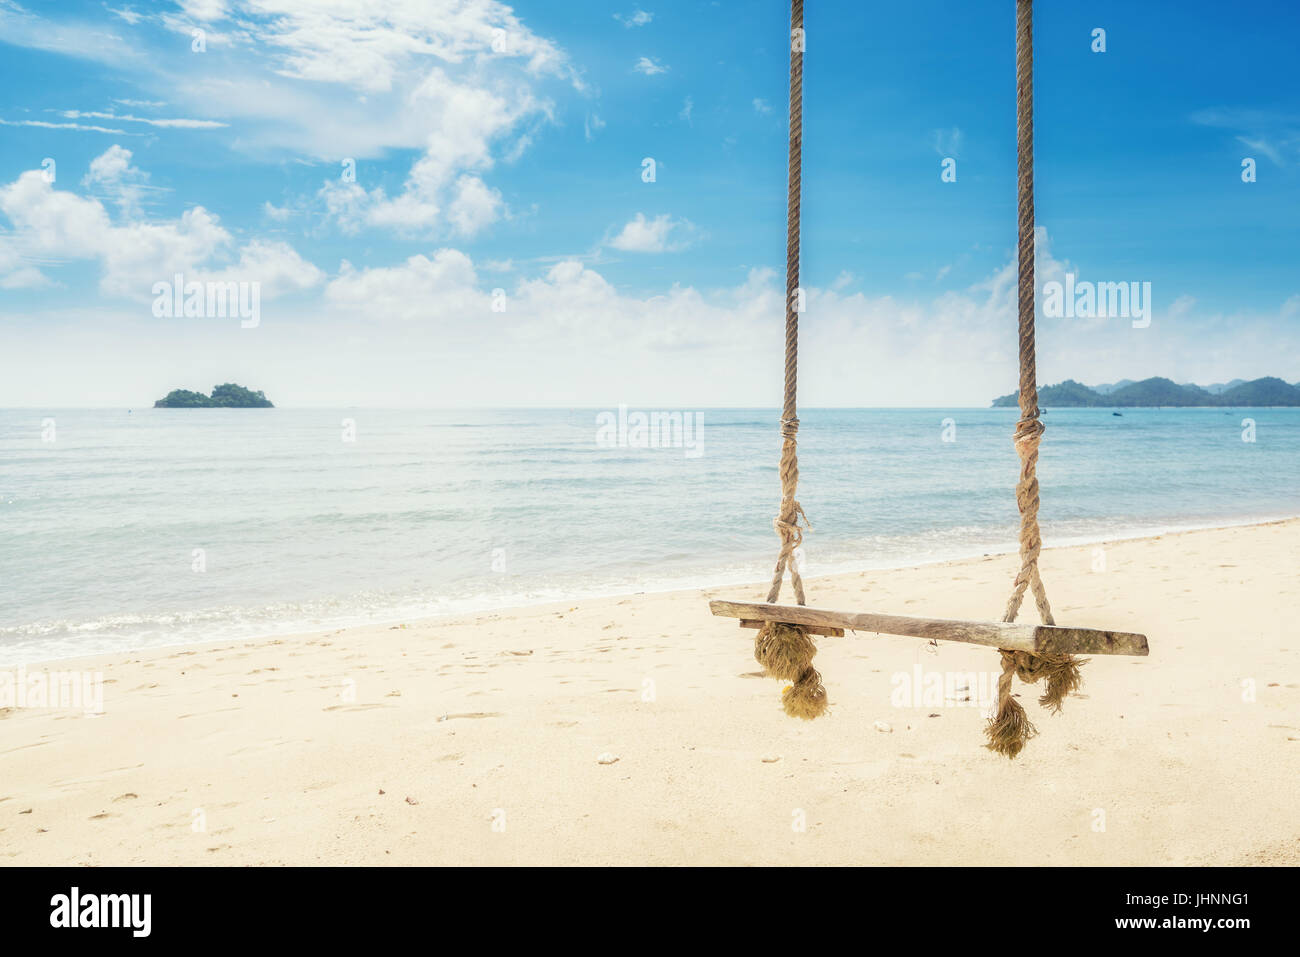 Wooden swing chair hanging on tree near beach at island in Phuket, Thailand. Summer Vacation Travel and Holiday - Stock Image